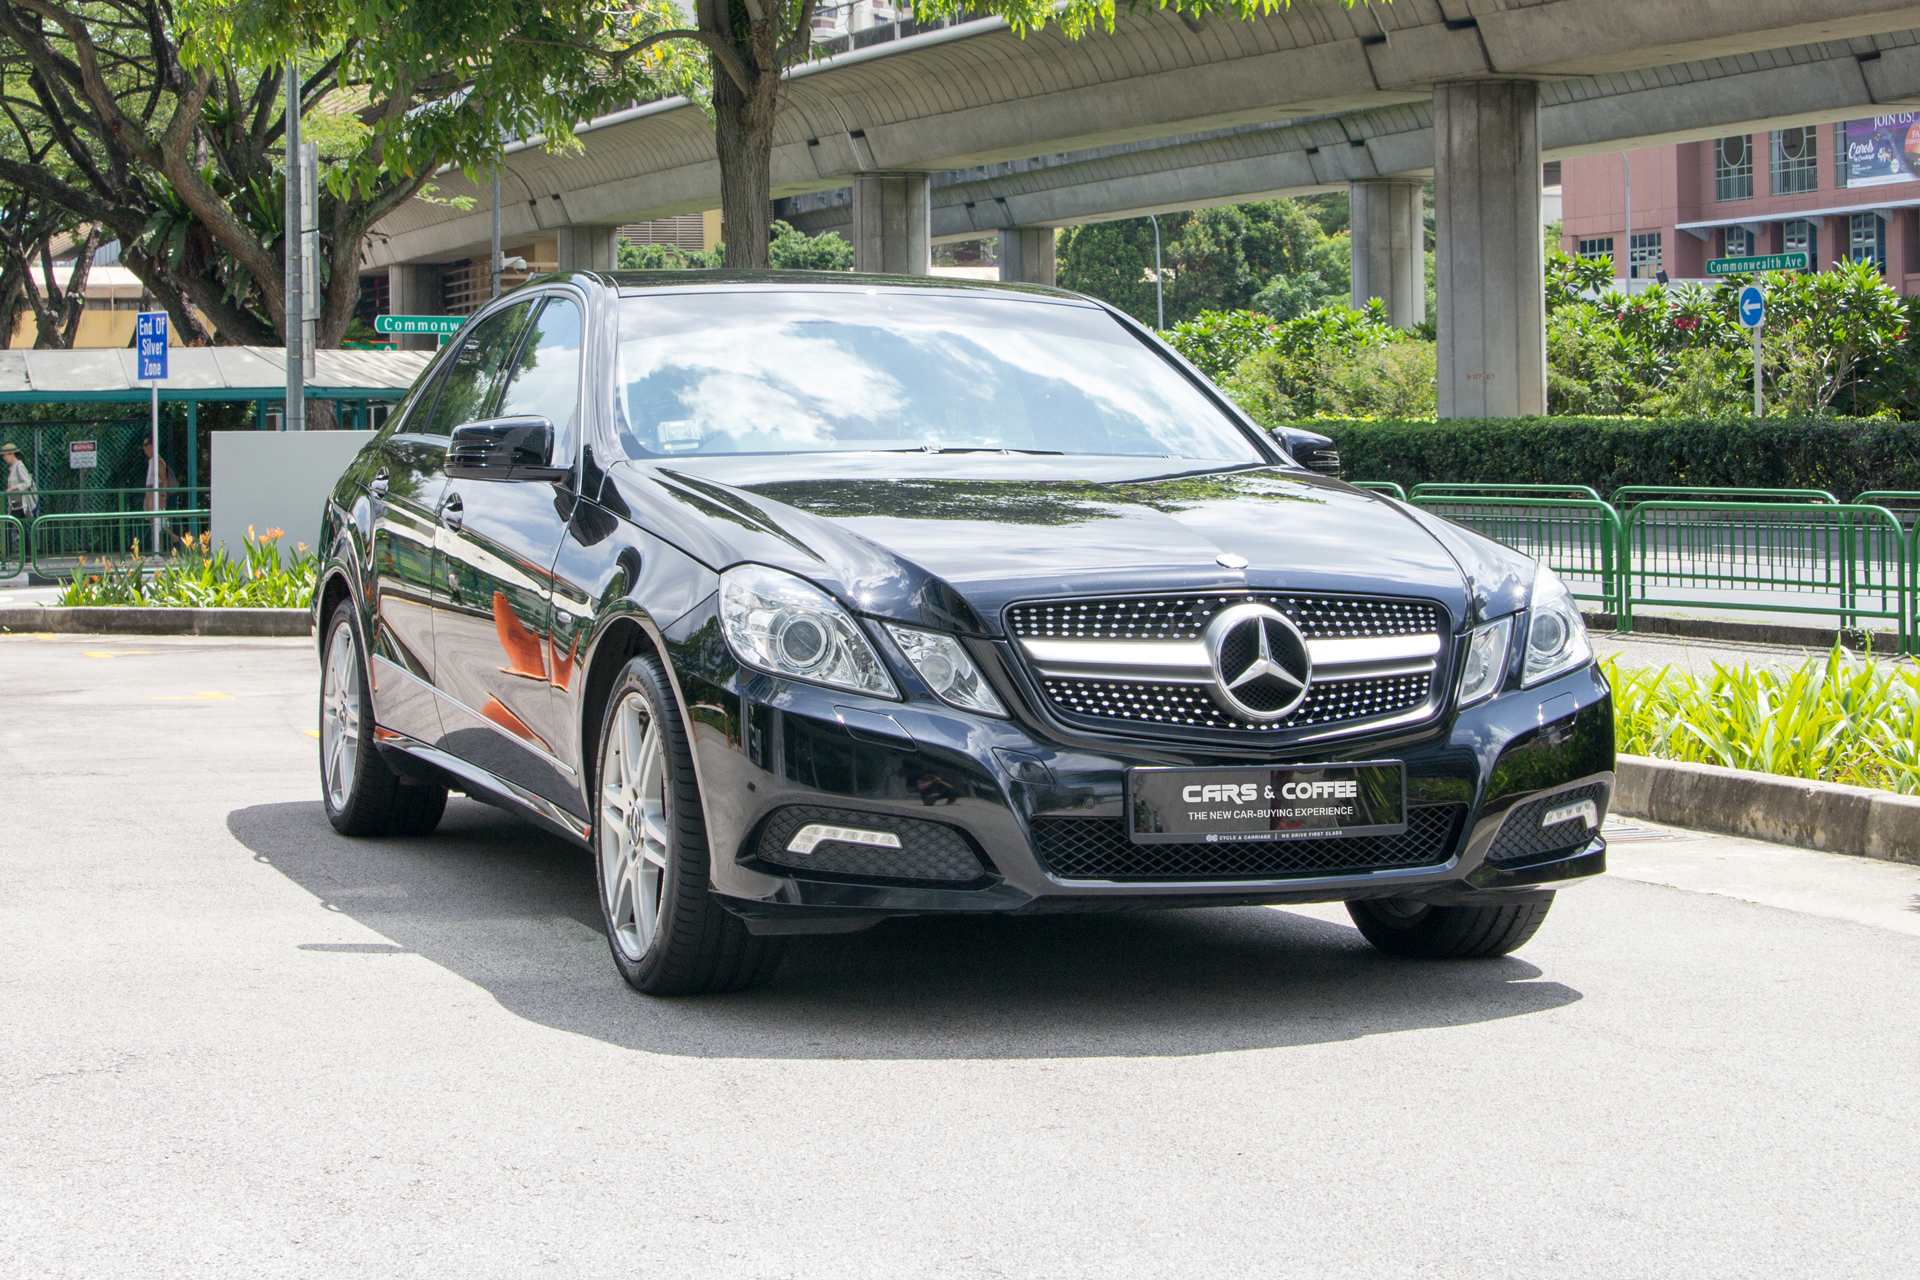 Certified Pre-Owned Mercedes-Benz E250 CGI | Cars and Coffee Singapore